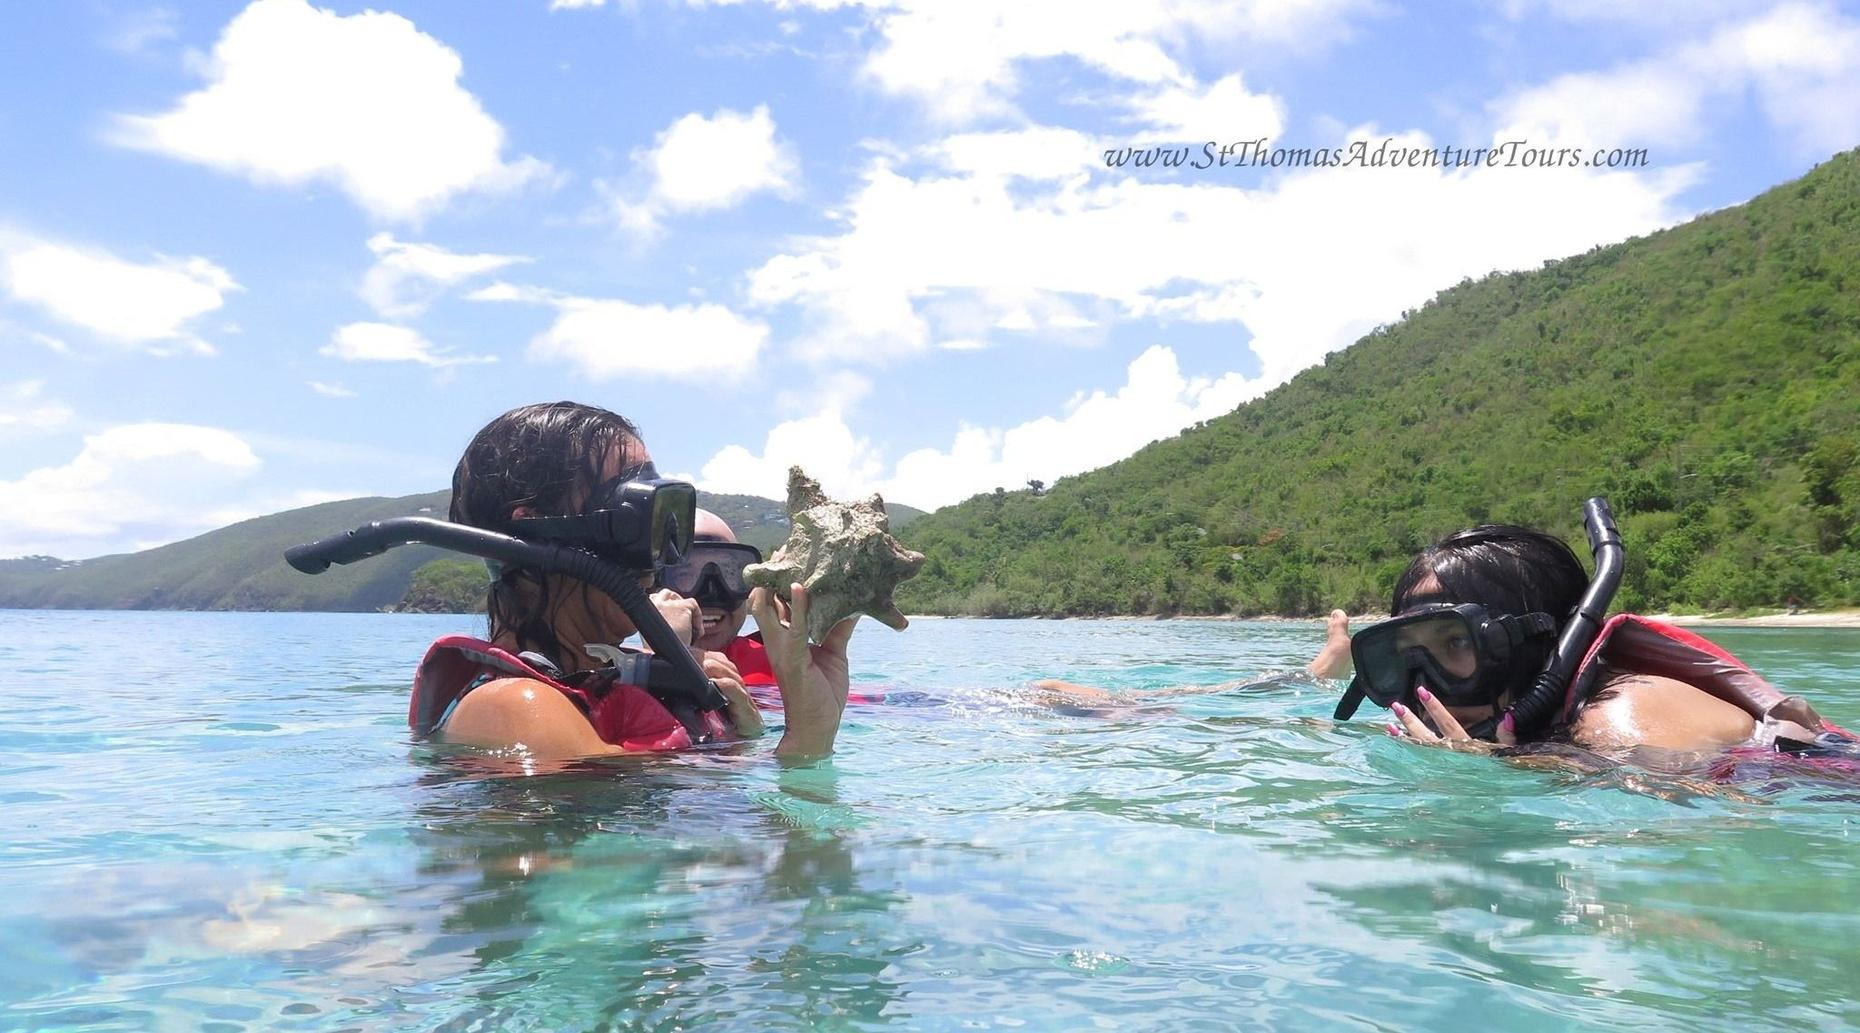 Turtle and Snorkel Excursion in St. Thomas